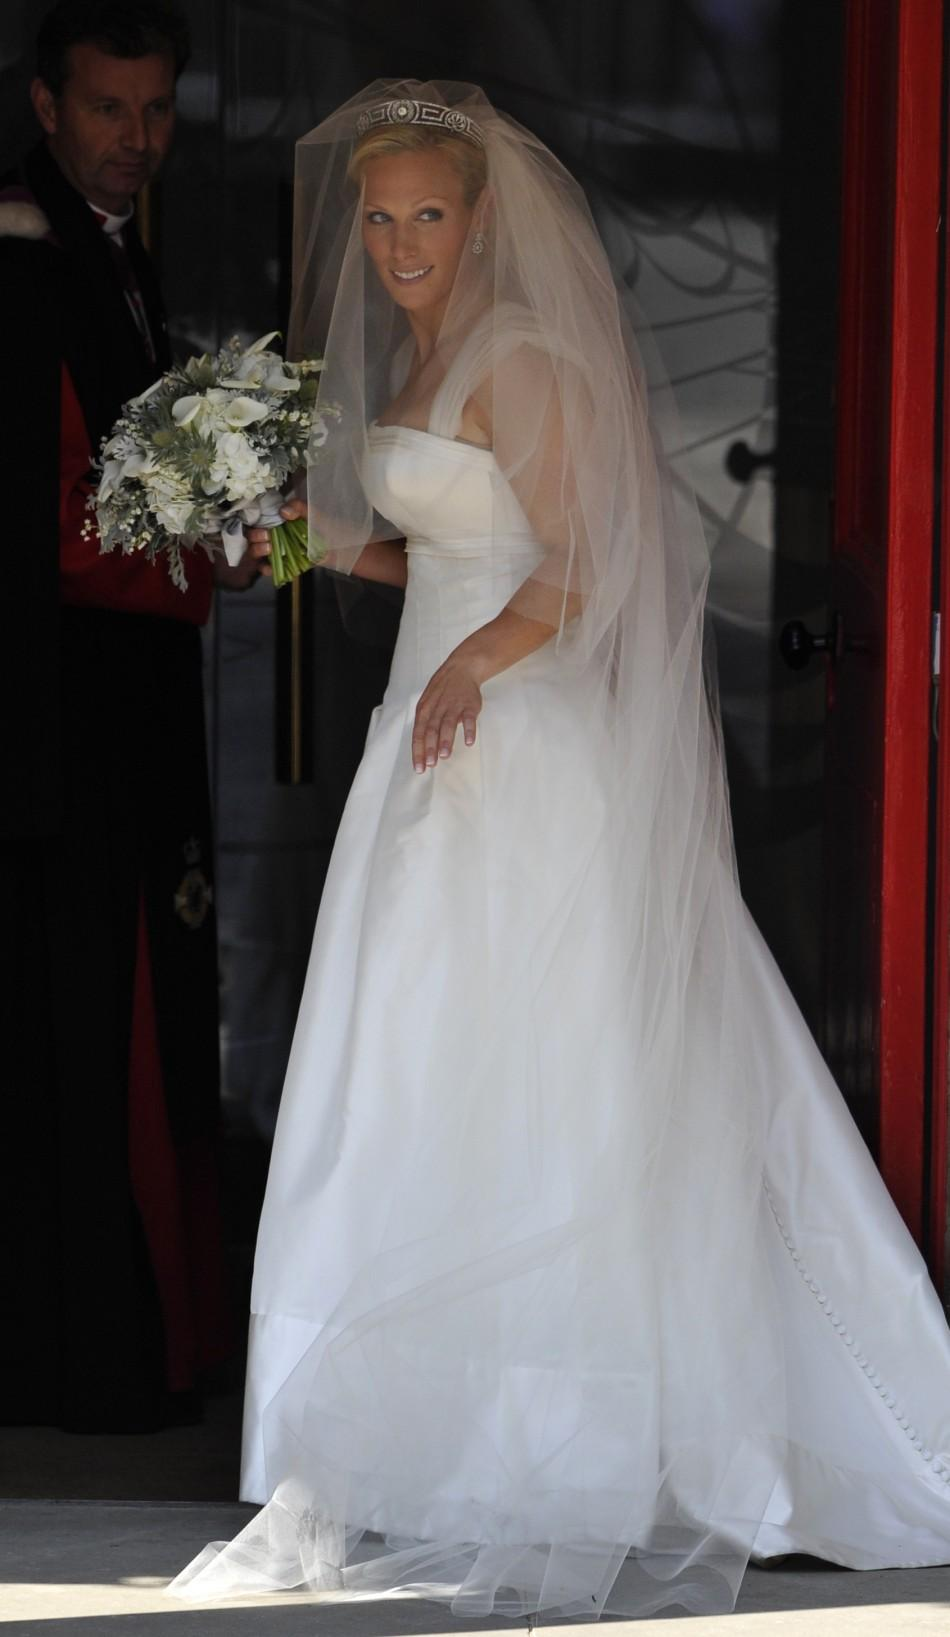 Britian's Second Royal Wedding Done, Zara Phillips and ...